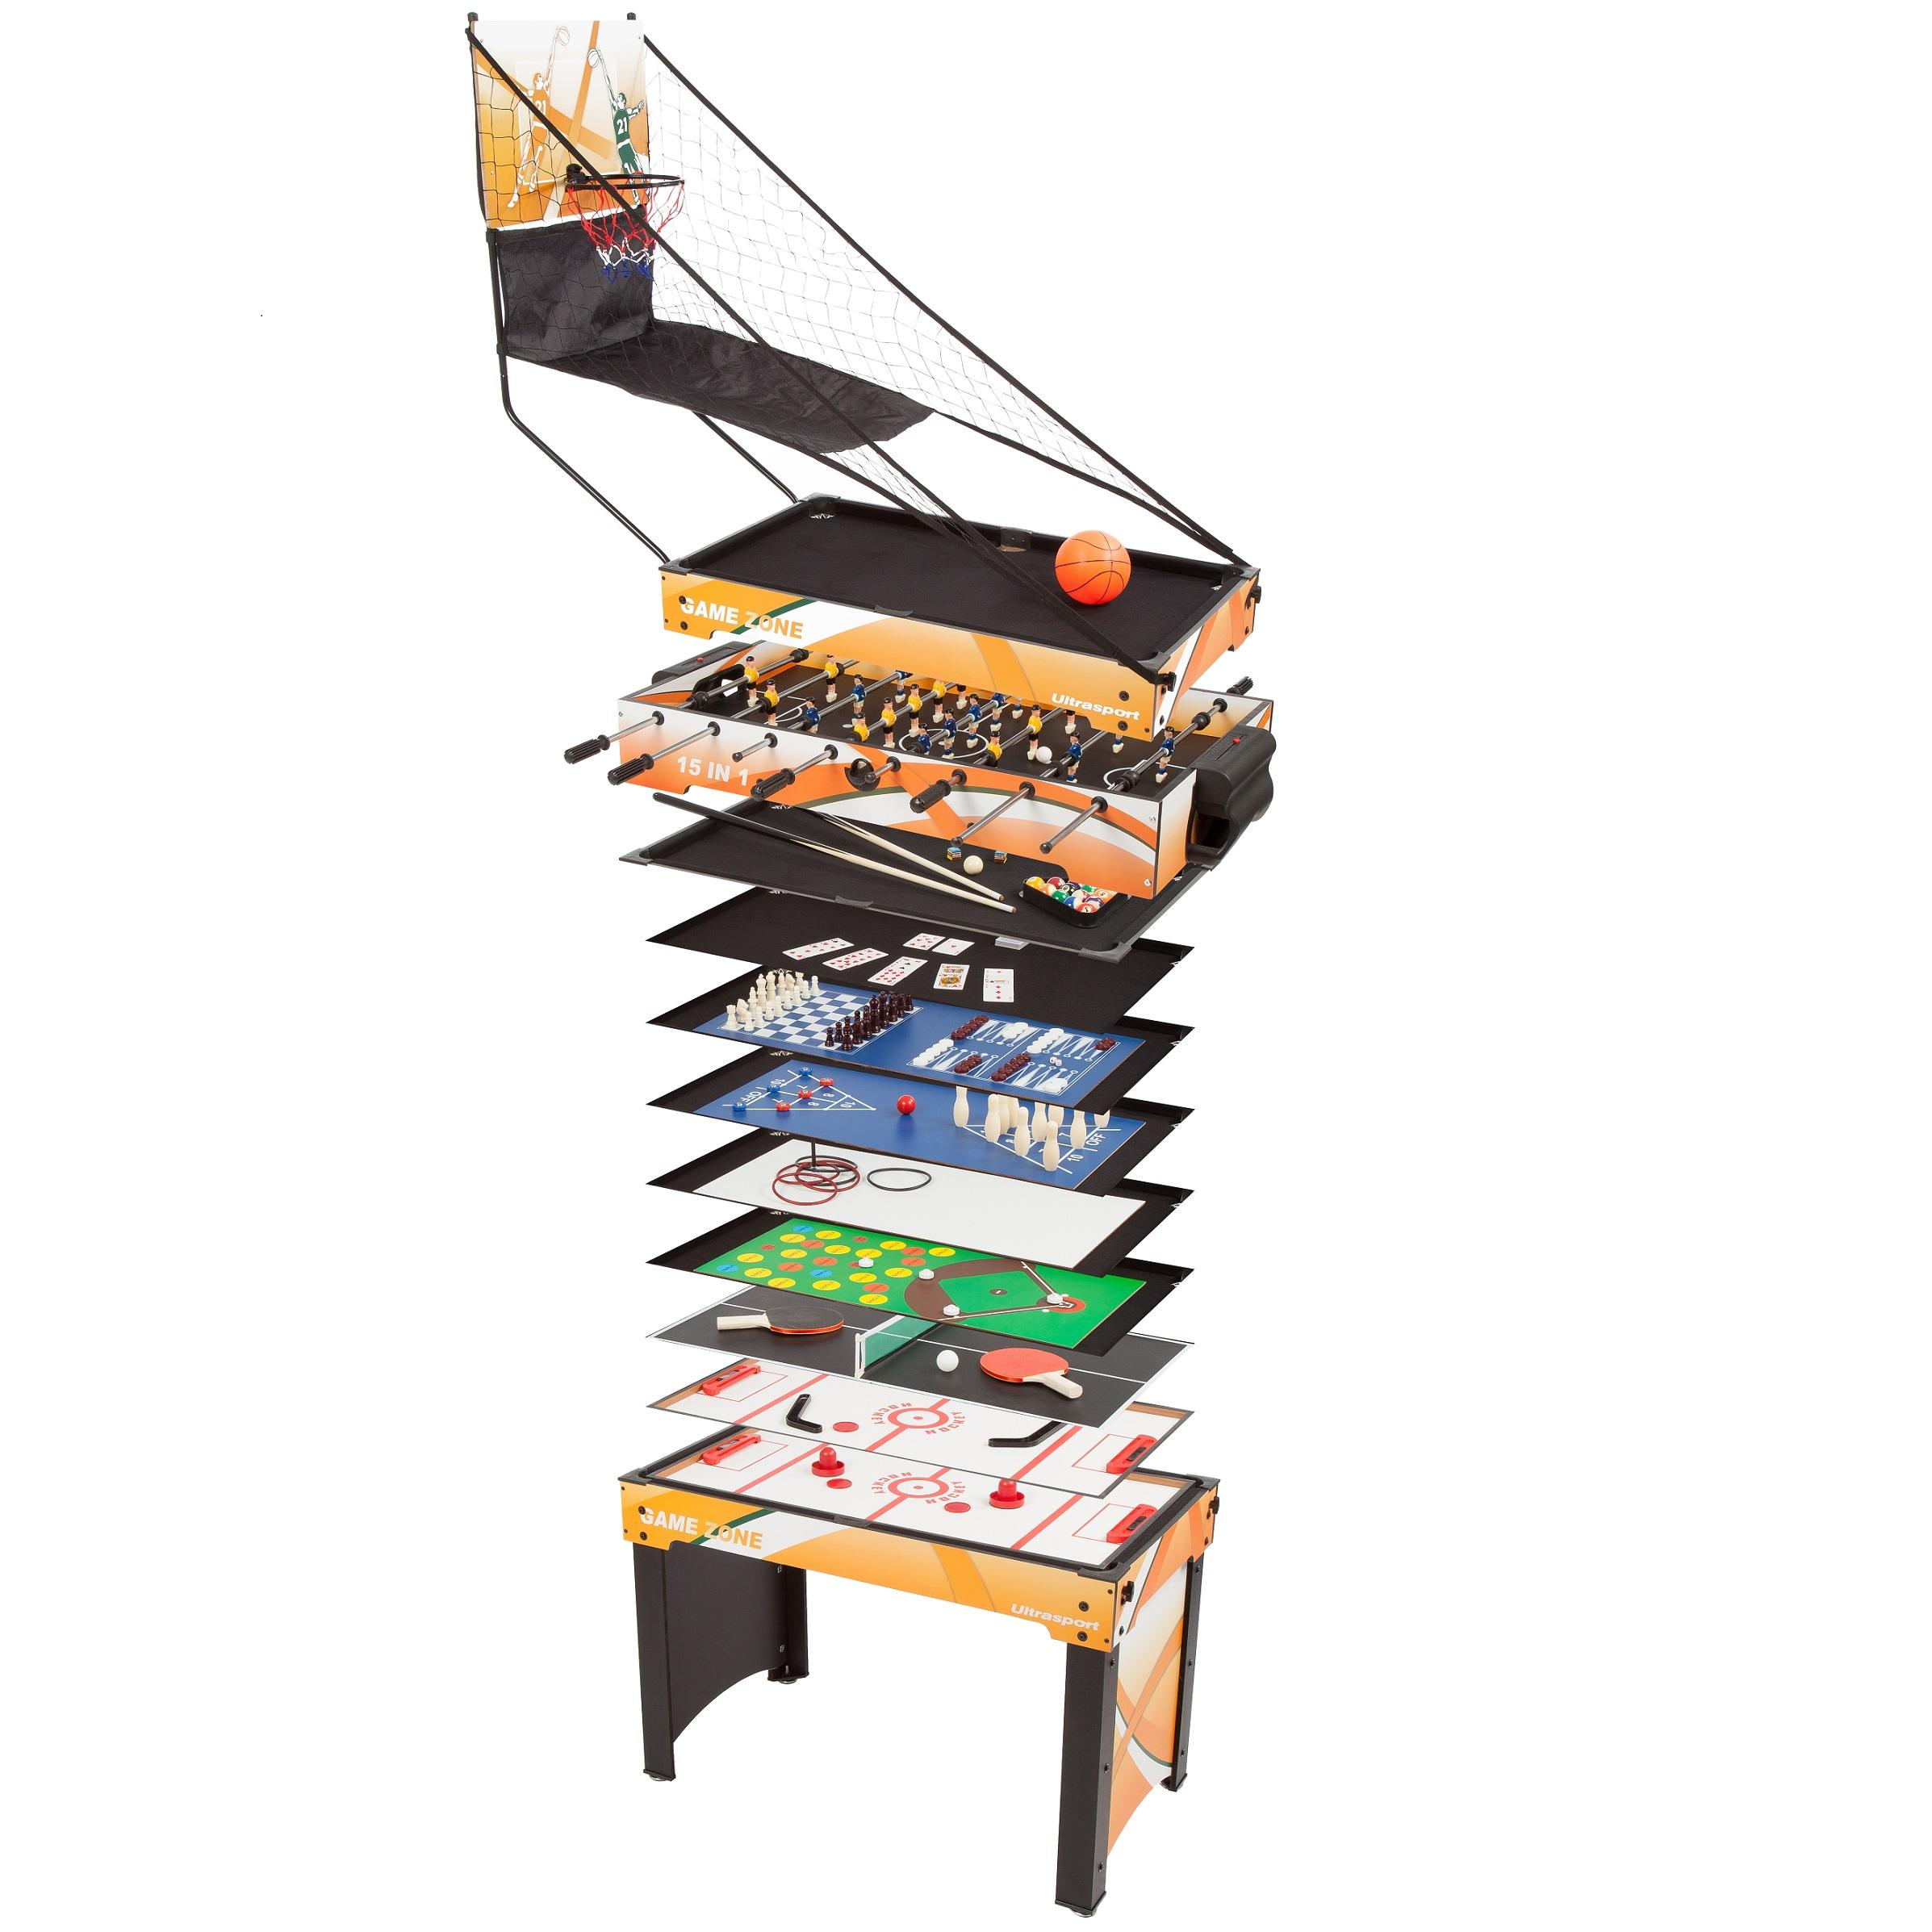 Ultrasport game table 15 in 1 game zone table size 42 x for 13 in 1 game table